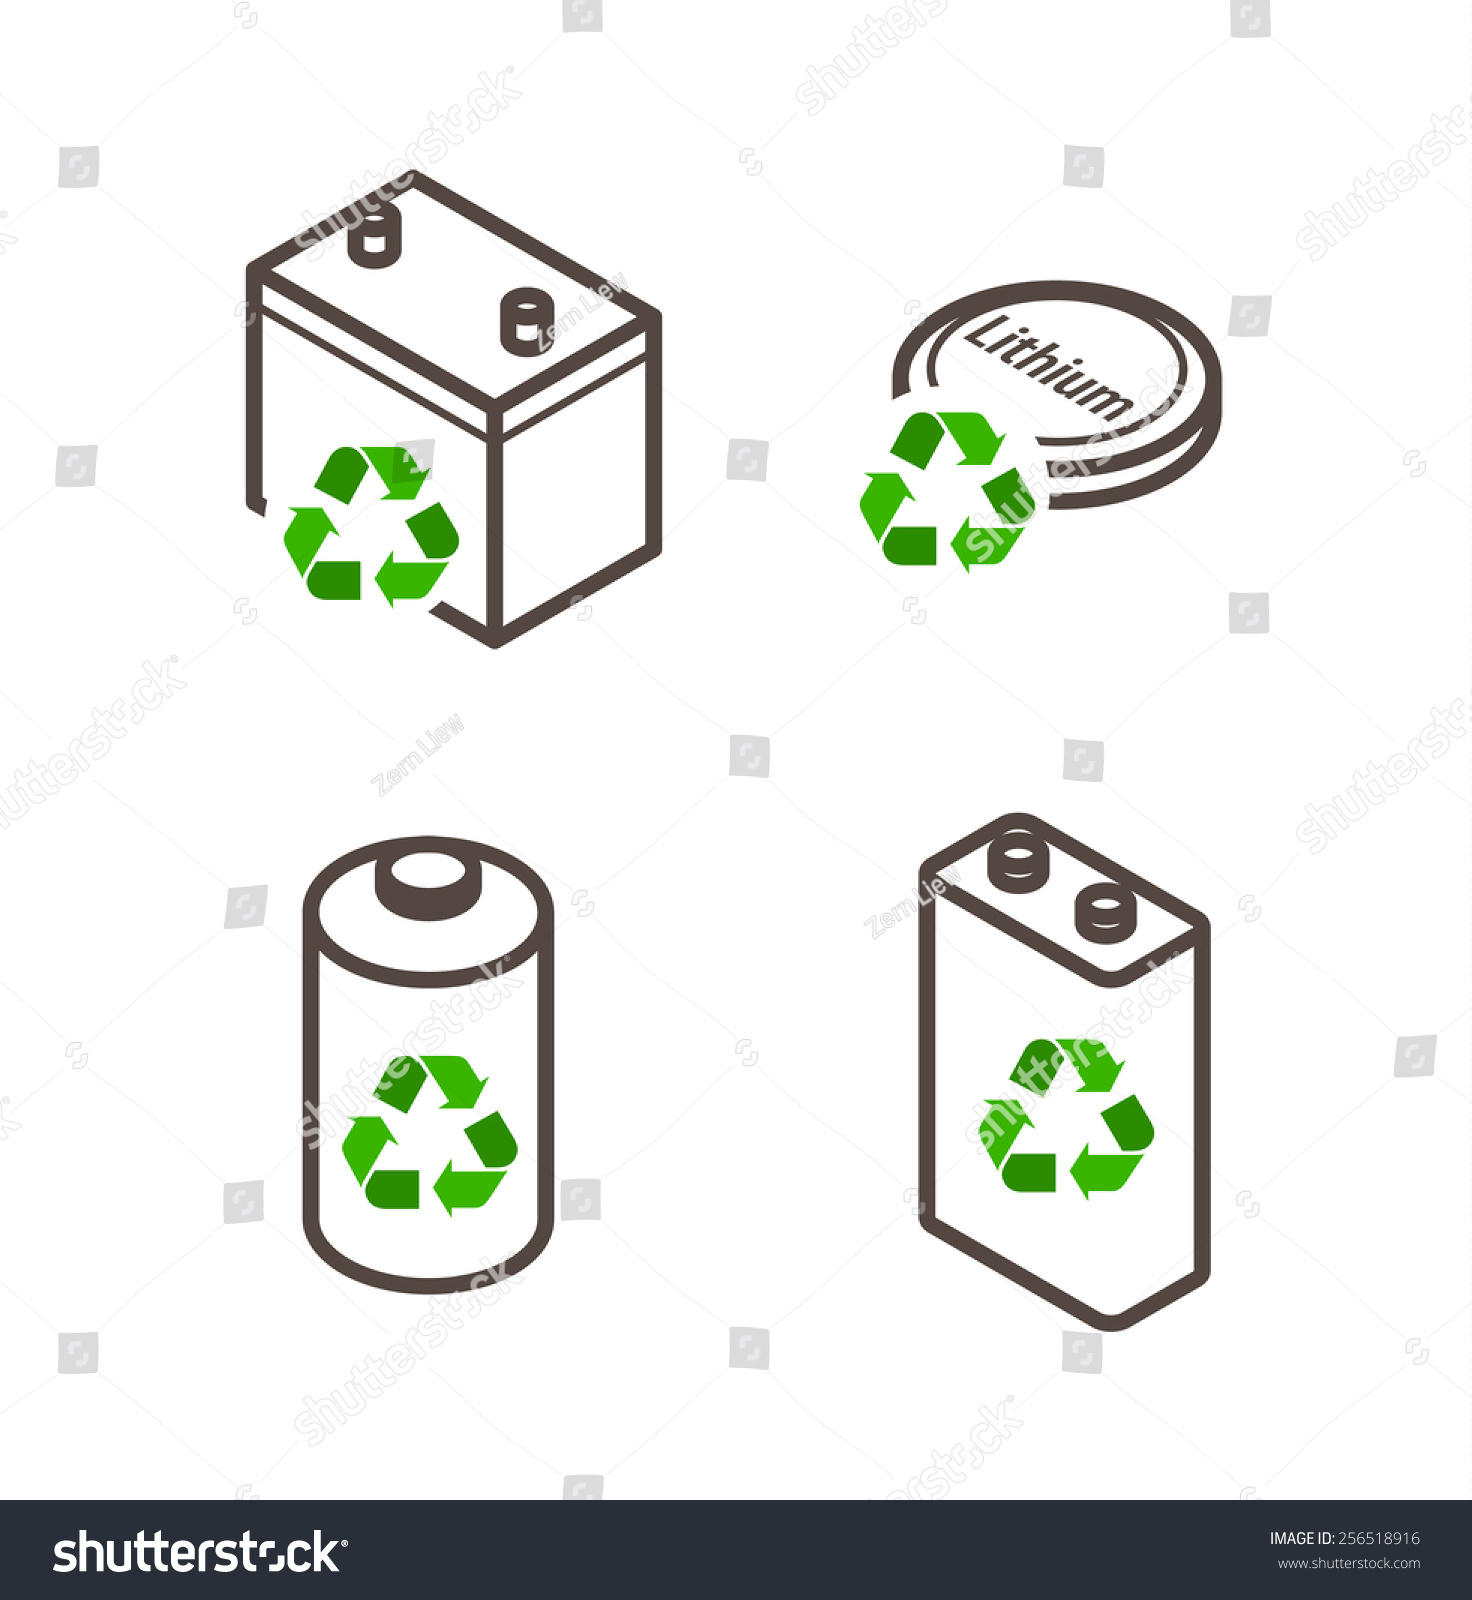 Royalty-free Recycling icons - dry cell battery,… #256518916 Stock ...